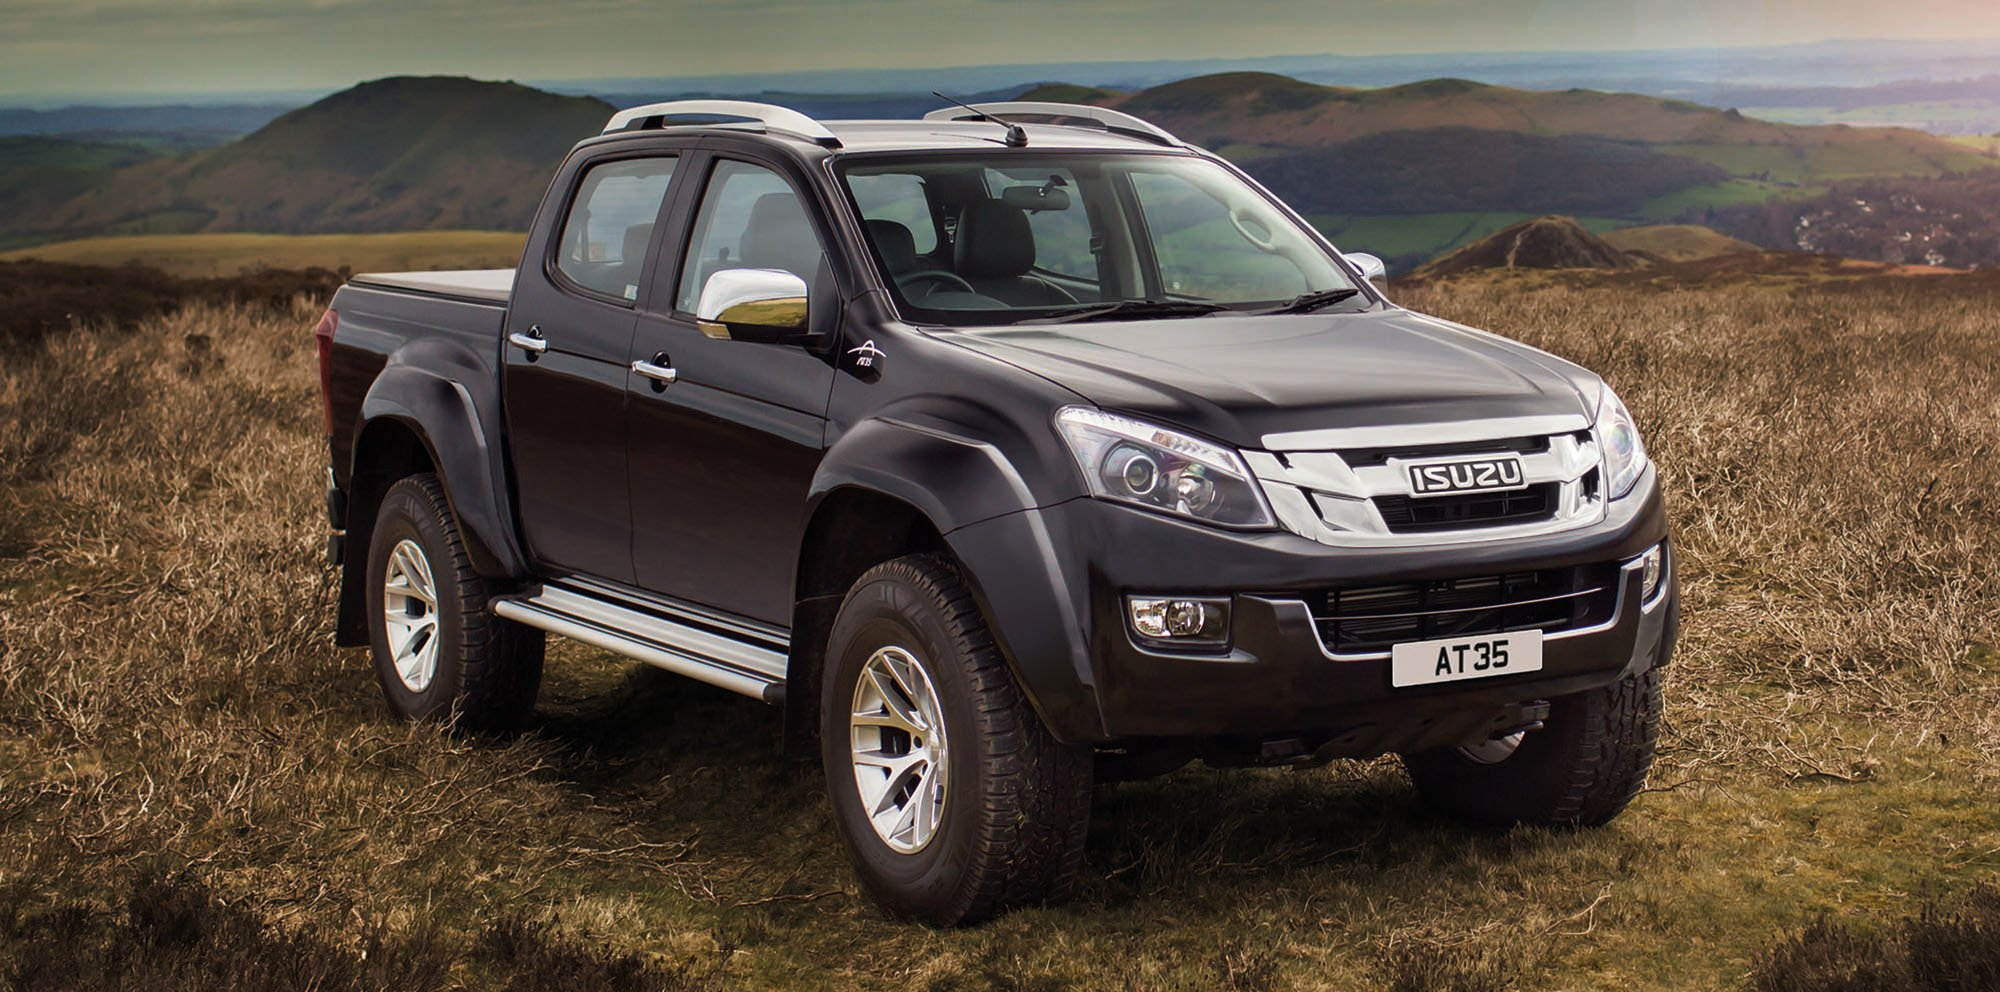 Isuzu is launching the most extreme D-Max to bolster its already  comprehensive model line-up. The new Isuzu D-Max Arctic Trucks AT35 is  engineered to excel ...